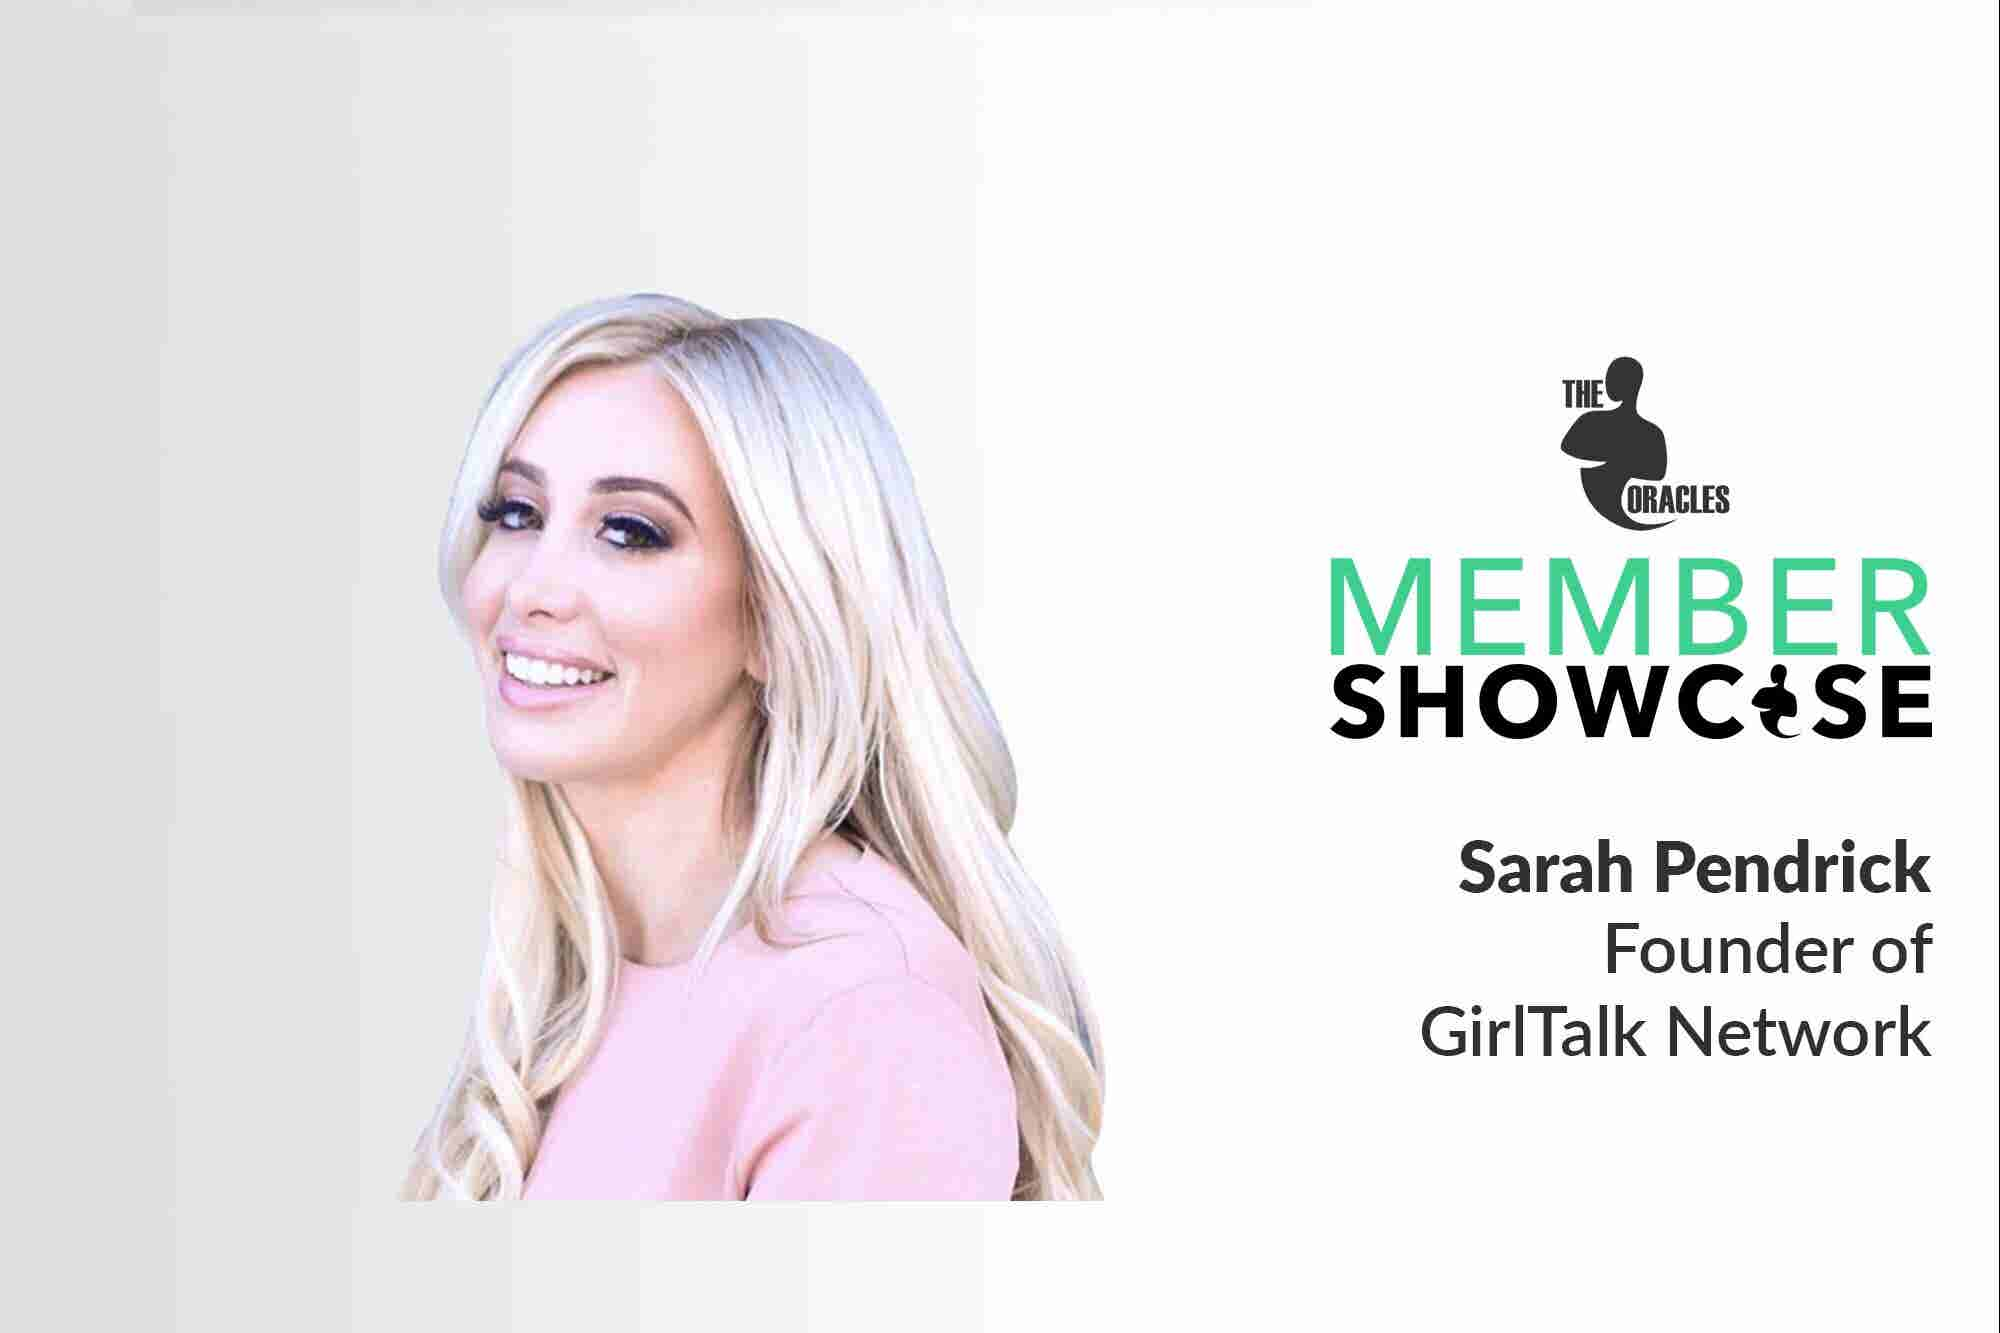 Sarah Pendrick Talks GirlTalk and How Women Can Empower Each Other